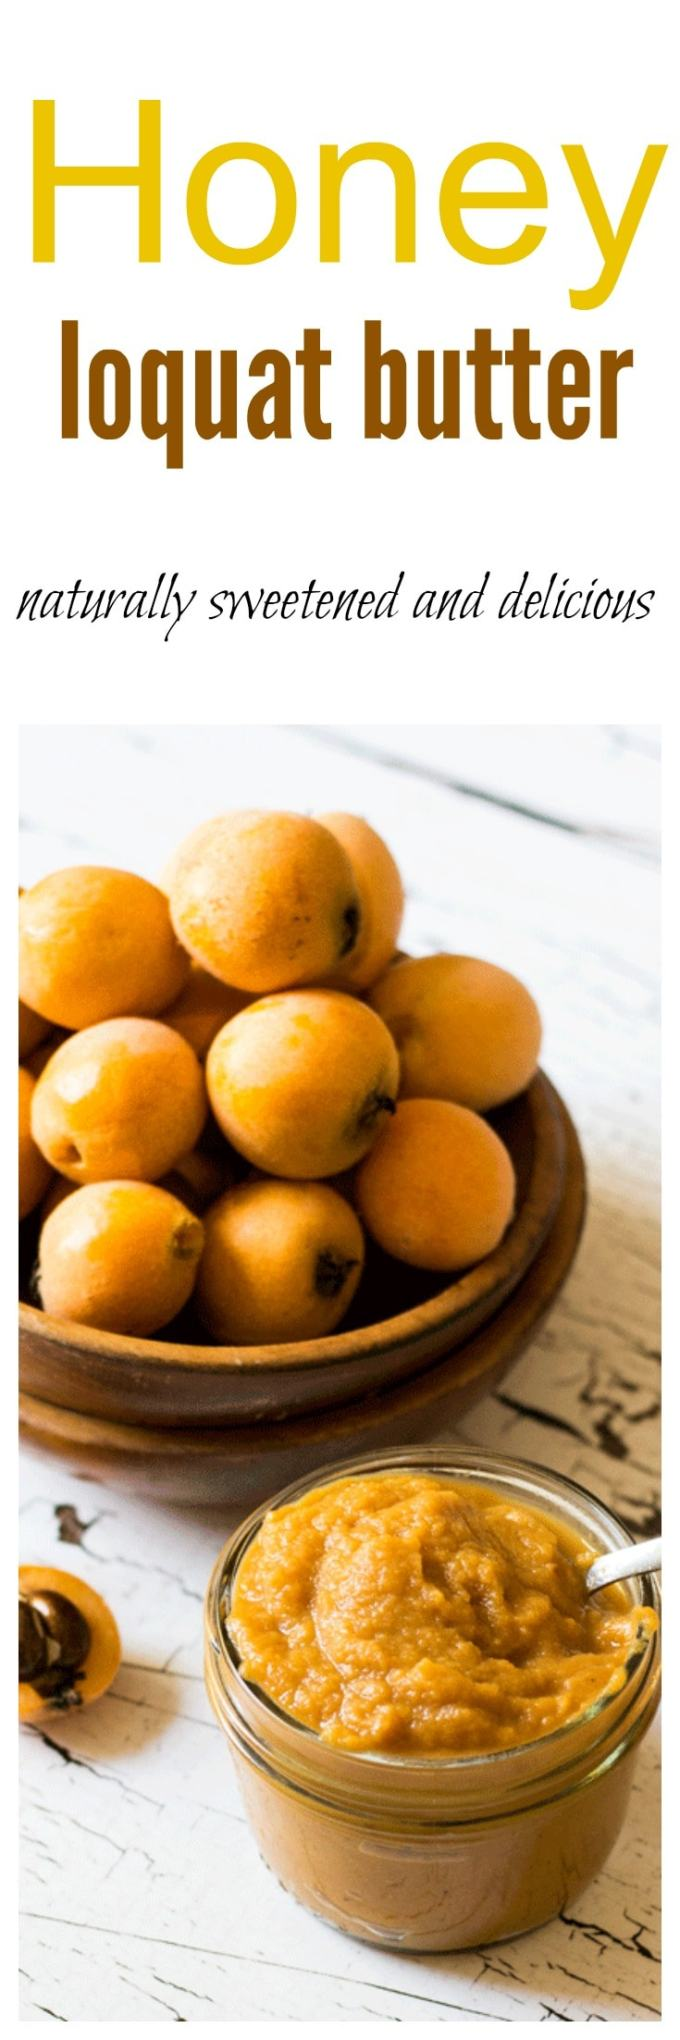 Indulge in natures unusual bounty with this naturally sweetened Honey Loquat Butter, which is just begging to be spread on some fresh crusty bread or used as a sweetener in baked goods.